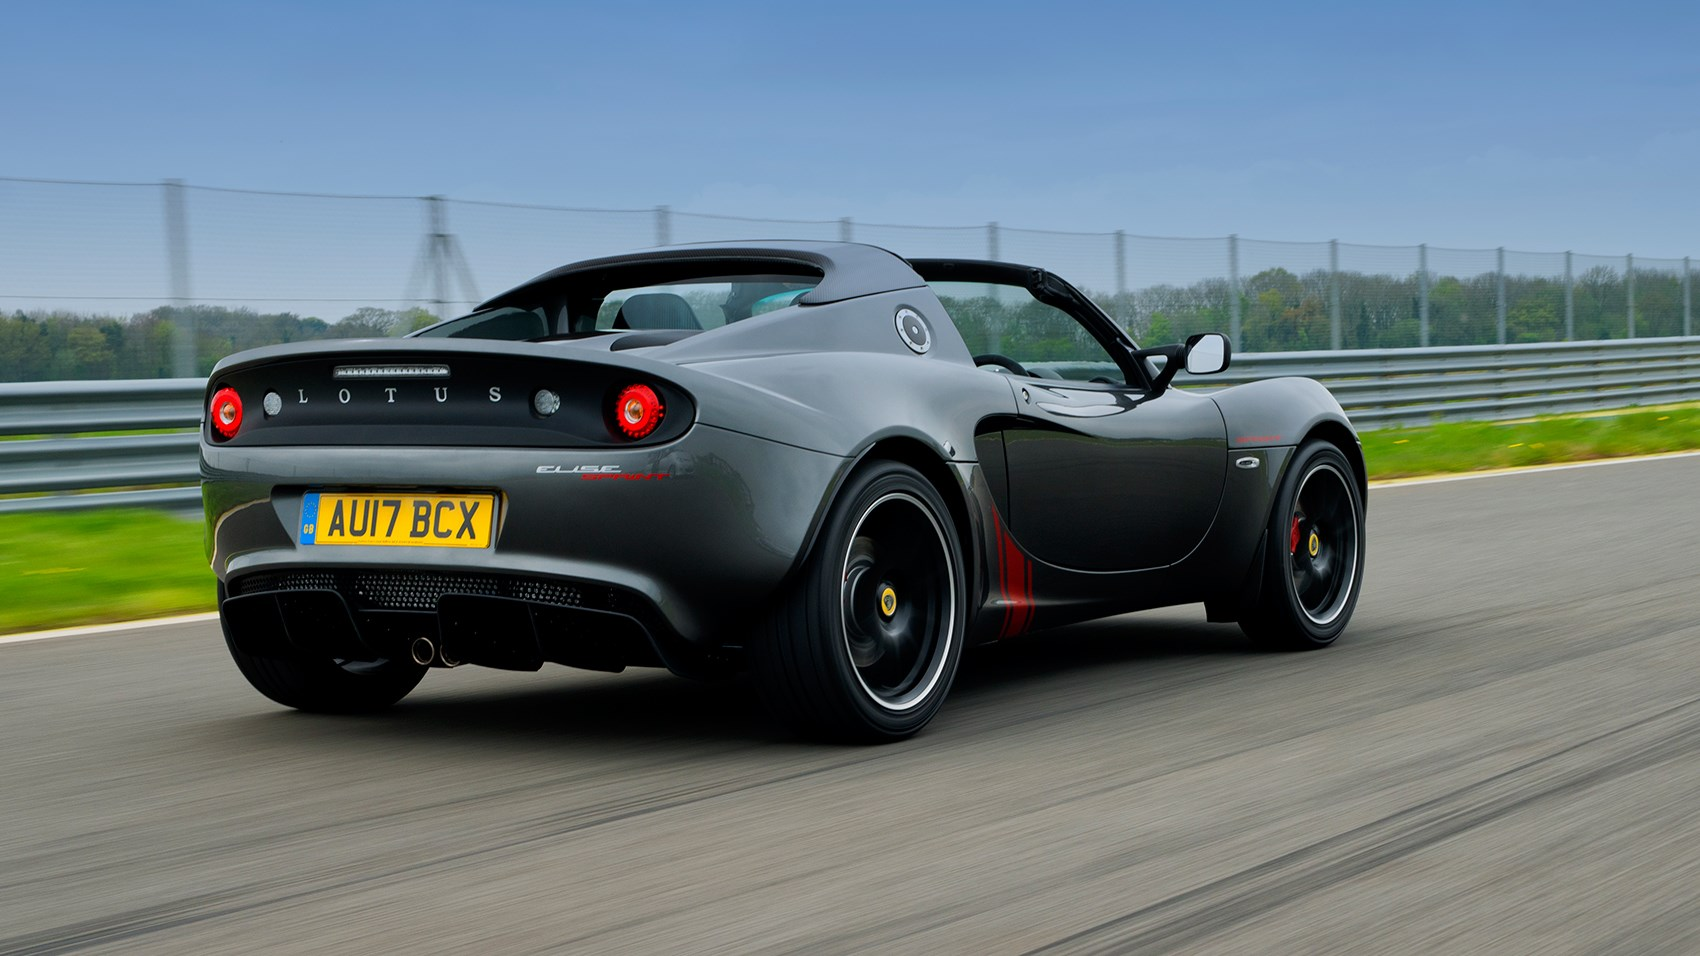 https://www.carmagazine.co.uk/Images/PageFiles/72398/Lotus-Elise-Sprint-04.jpg